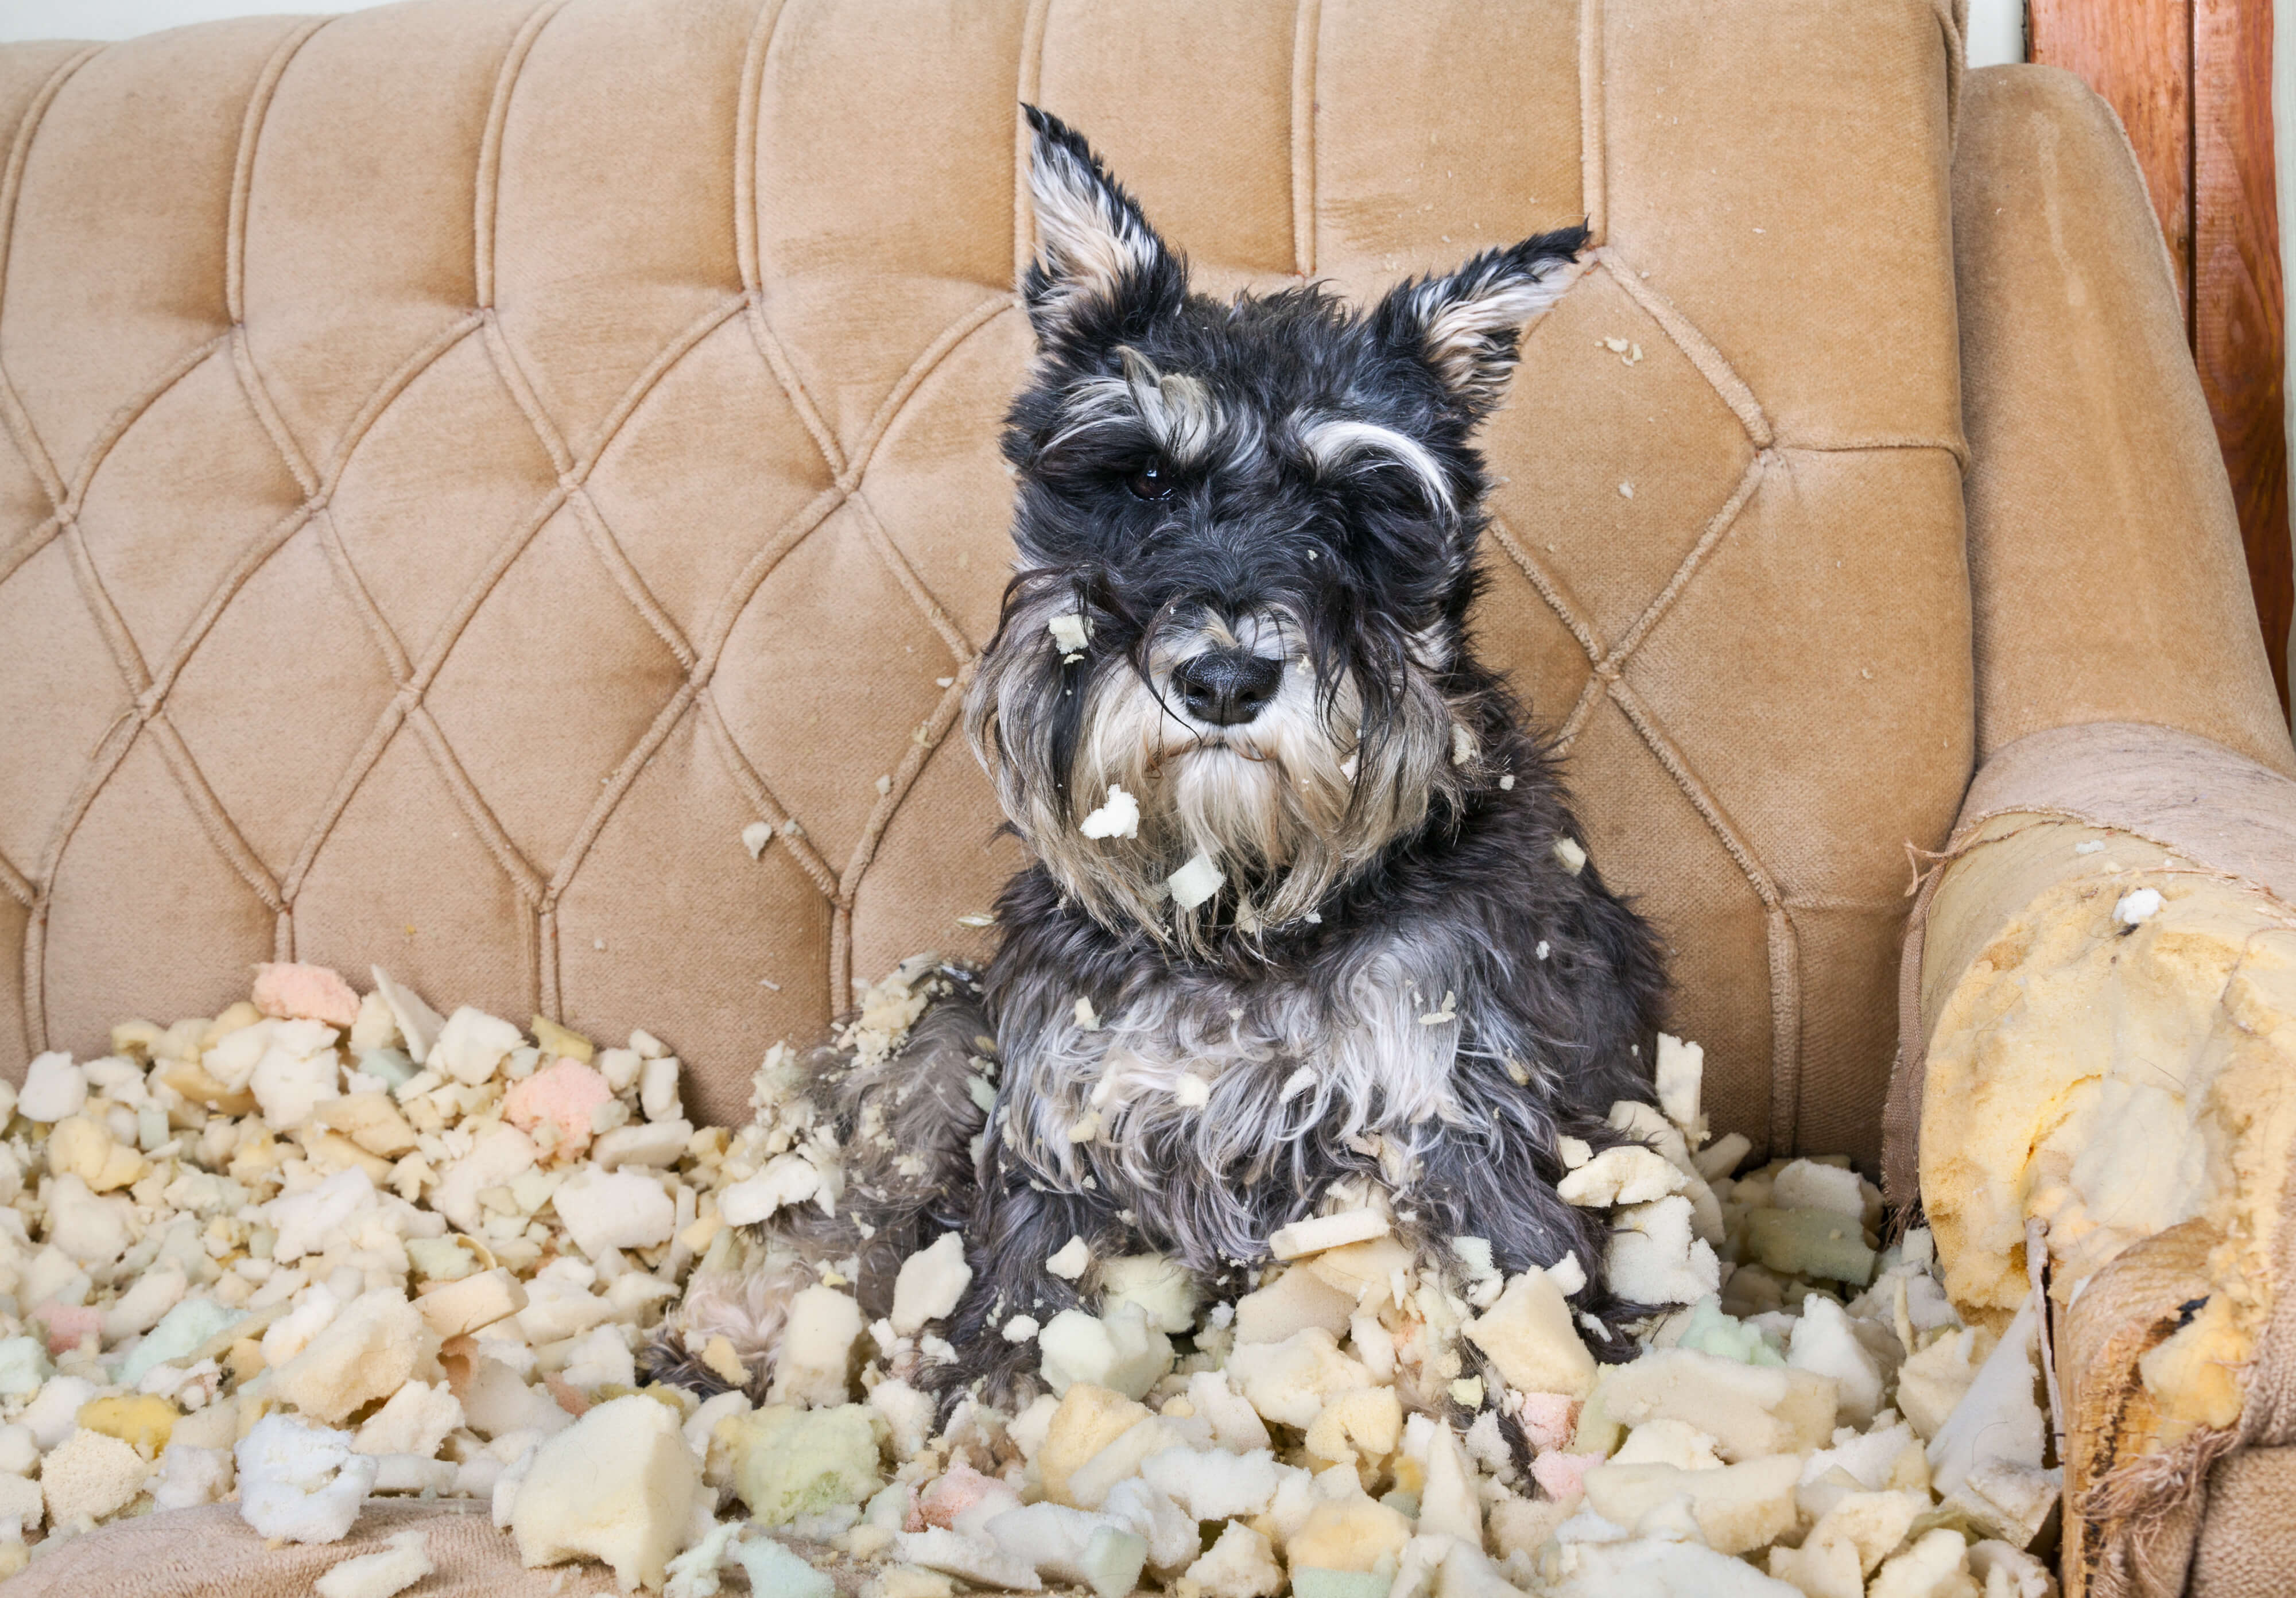 A miniature schnauzer sitting atop a destroyed couch.